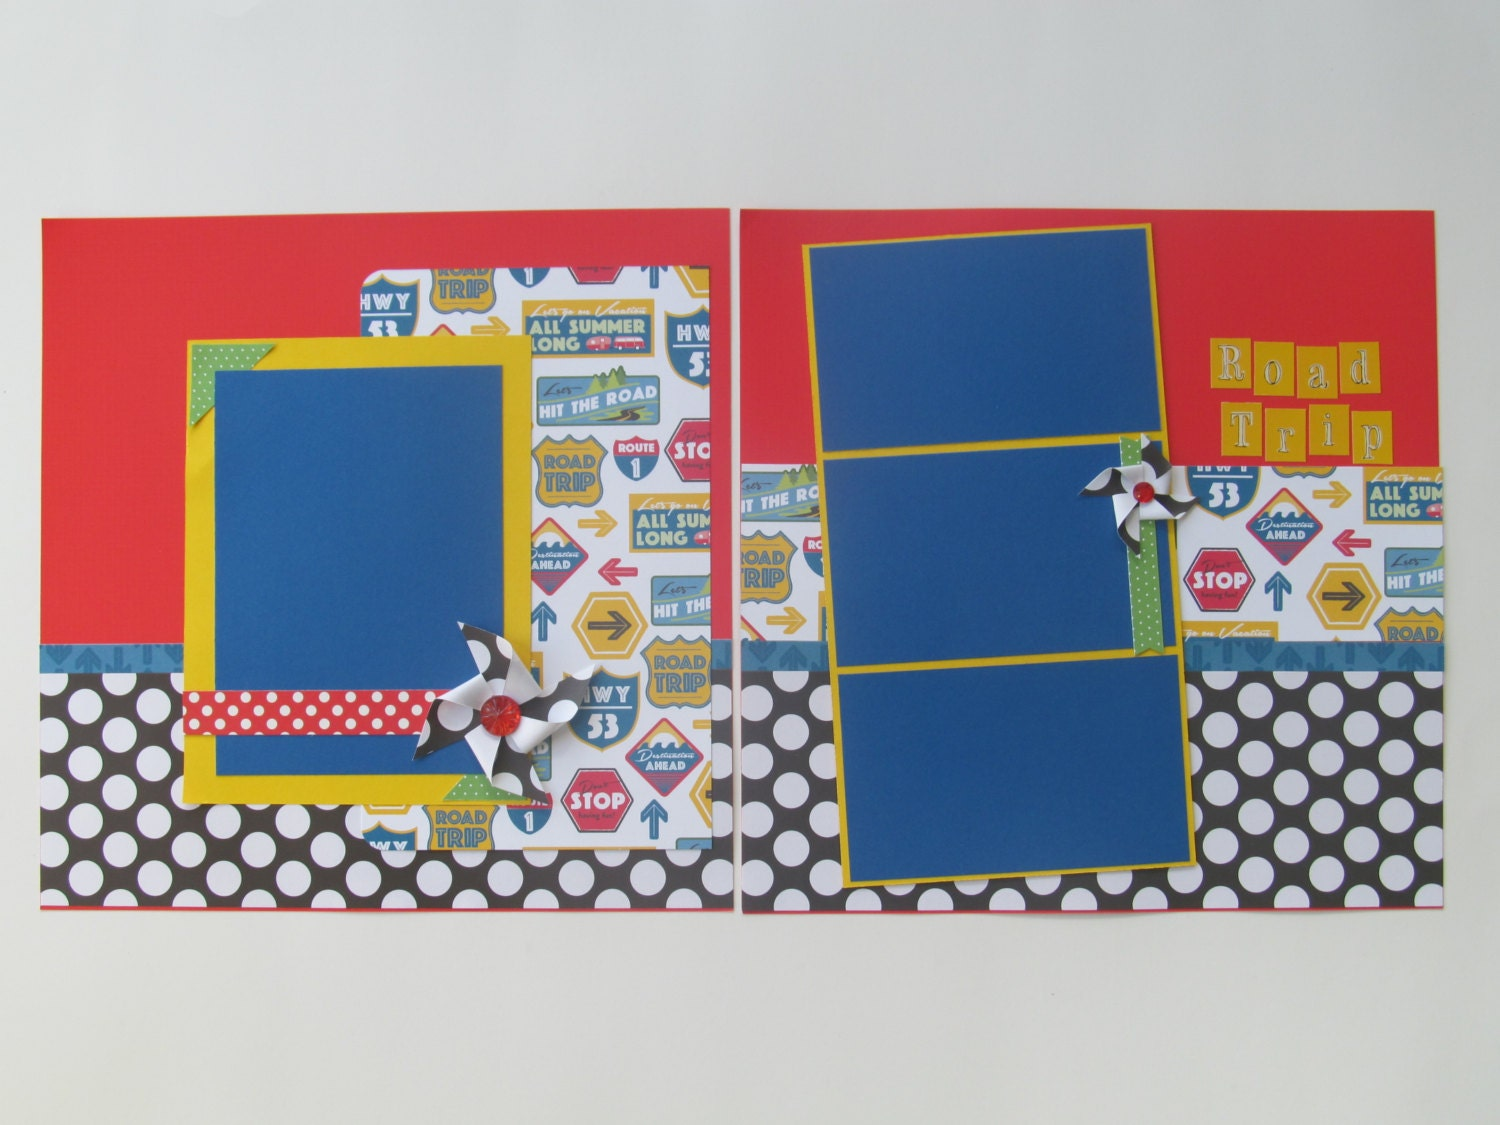 How to scrapbook a road trip - Sold By Blessedbydesign